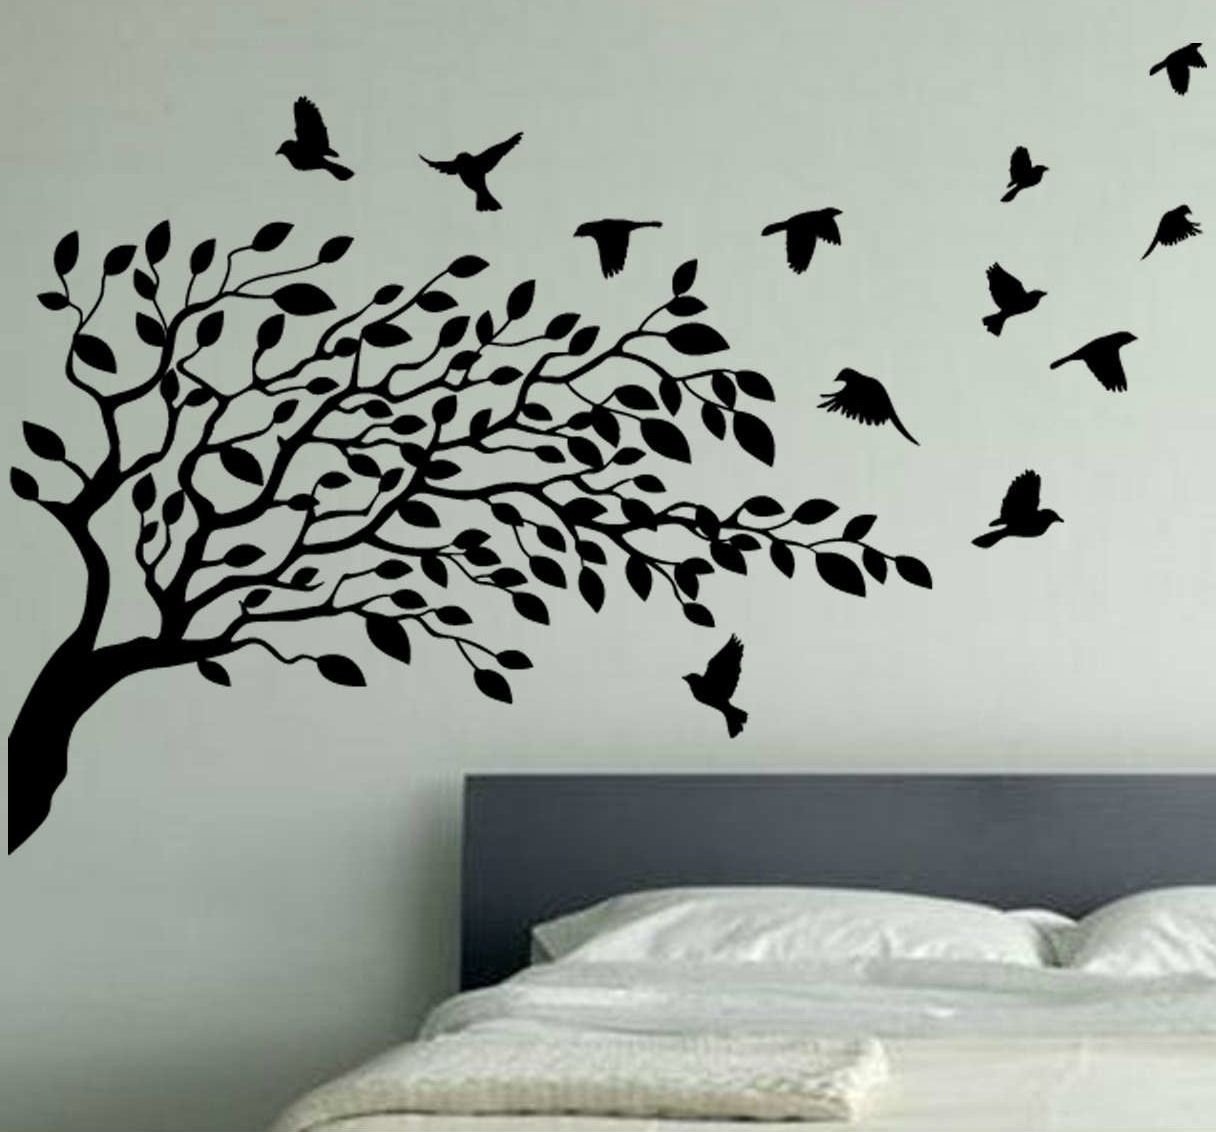 Wallpaper Wall Decals Stickers Art Vinyl Removable Birdcage Bird Tree -  Bird wallpaper stickers